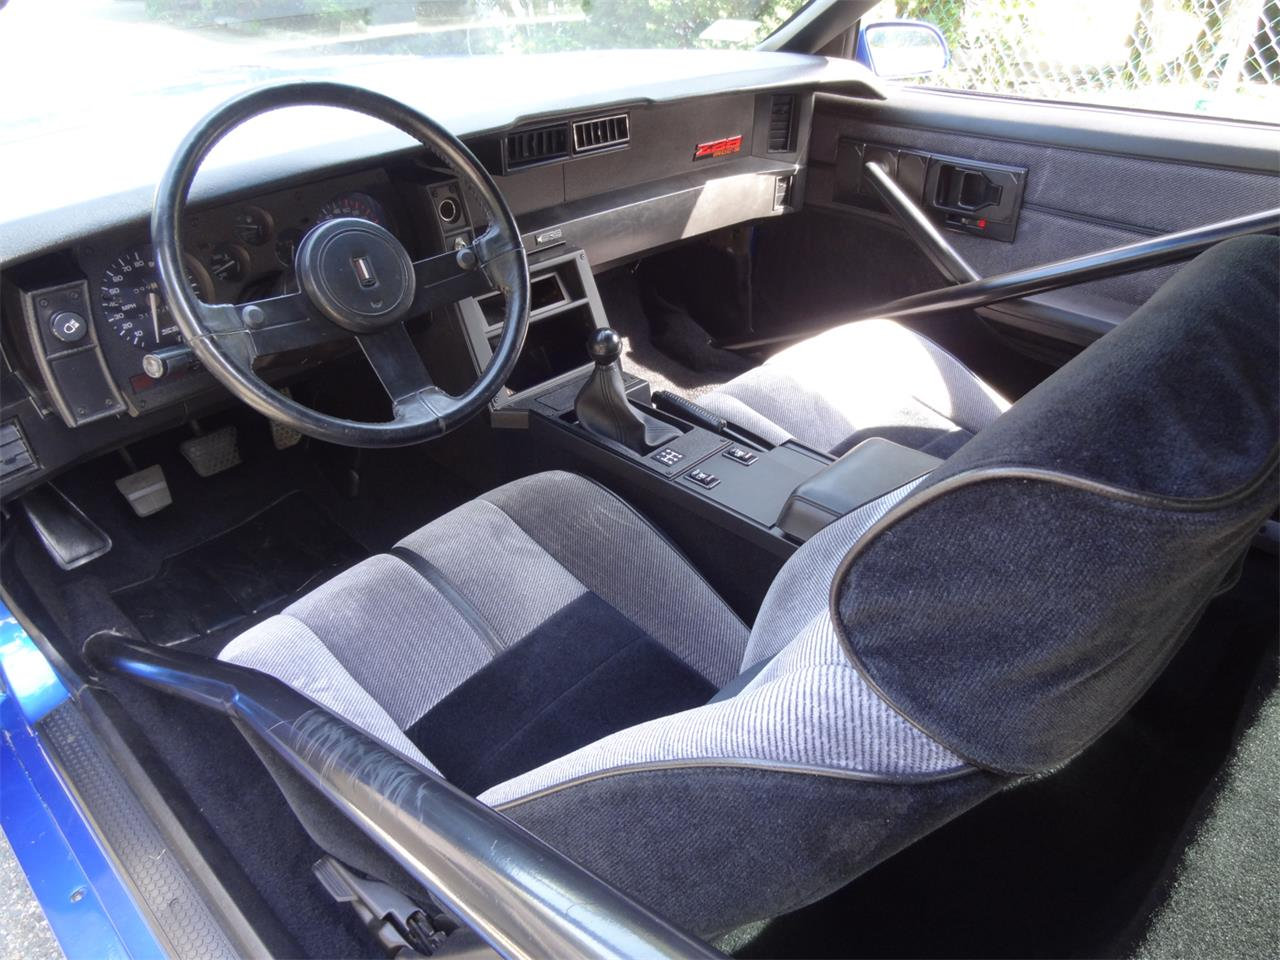 Large Picture of 1983 Chevrolet Camaro IROC Z28 located in Massachusetts - $30,000.00 Offered by a Private Seller - QUEA